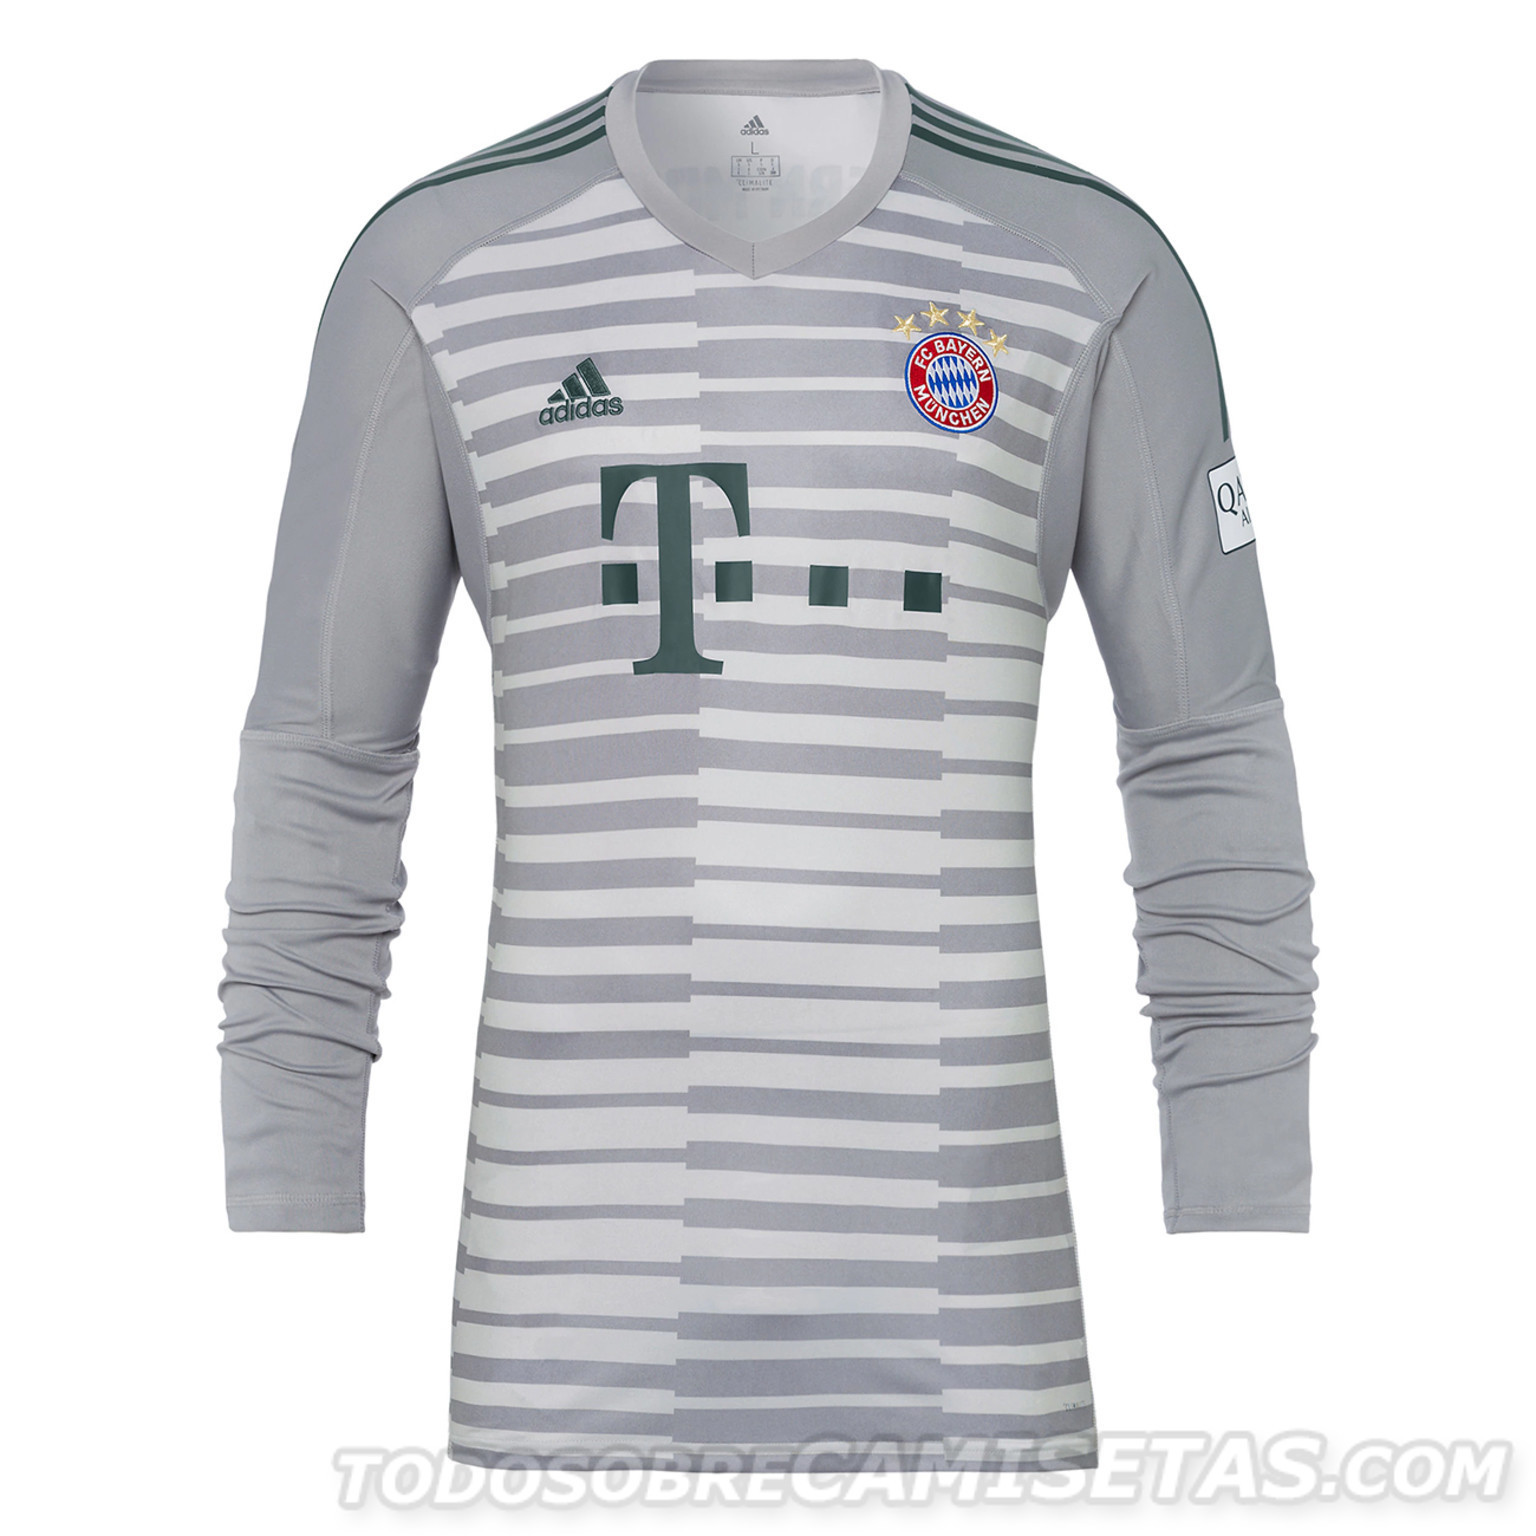 Bayern-Munich-2018-19-adidas-new-GK-home-kit-3.jpg